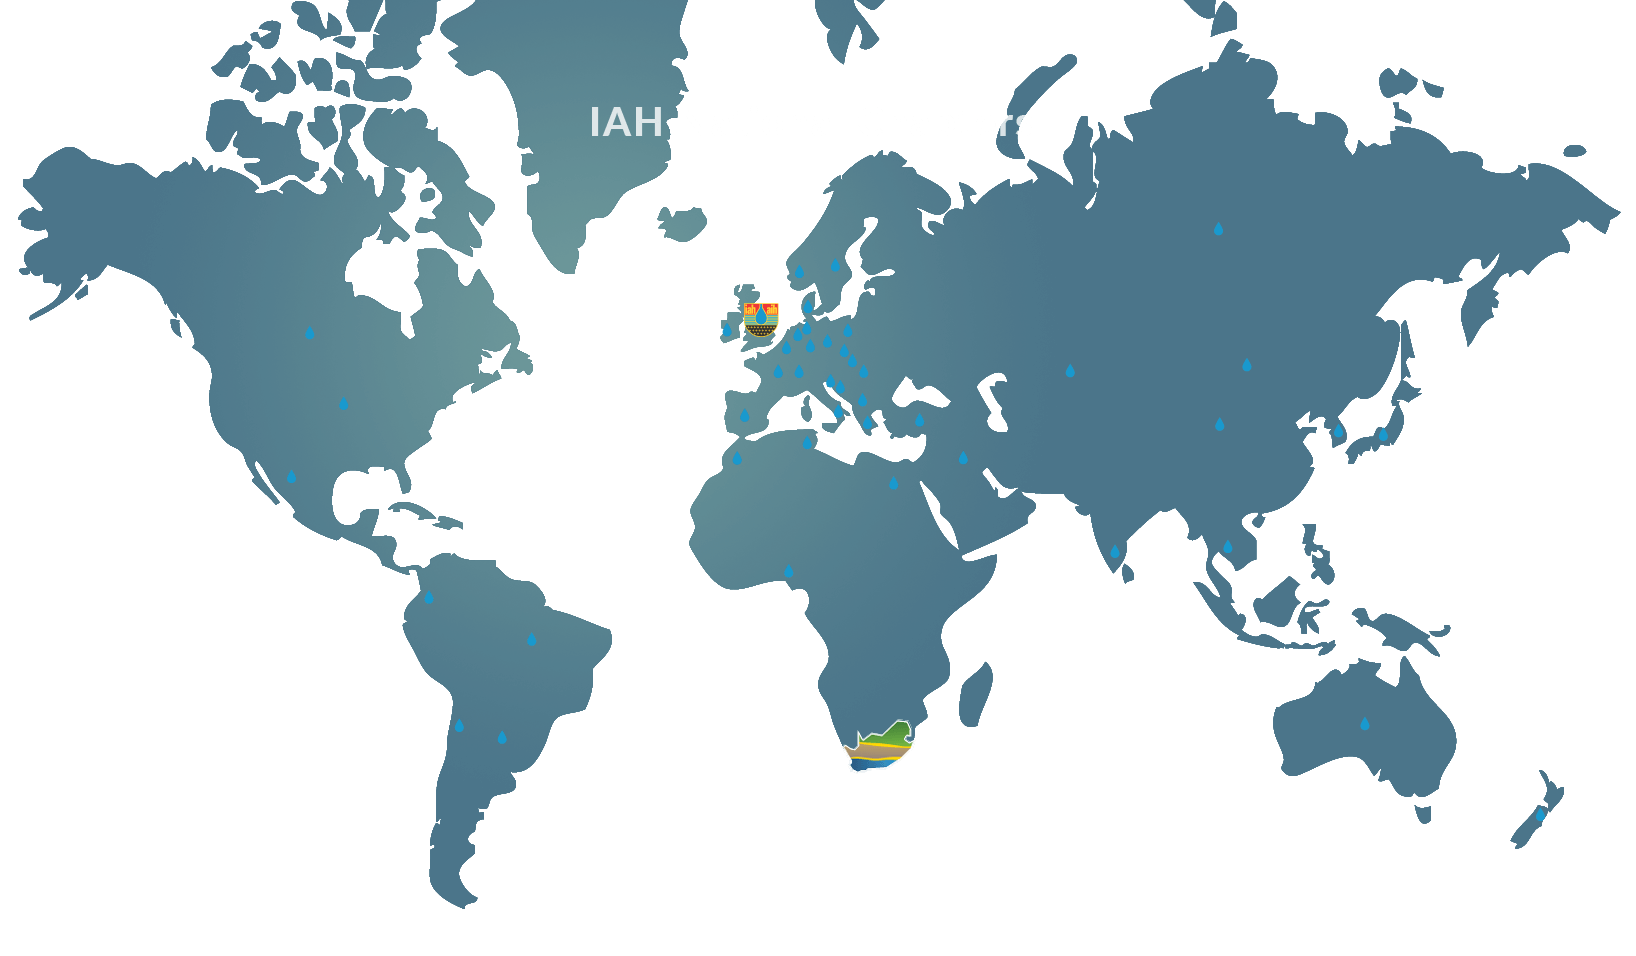 International Association of Hydrogeologists National Chapters